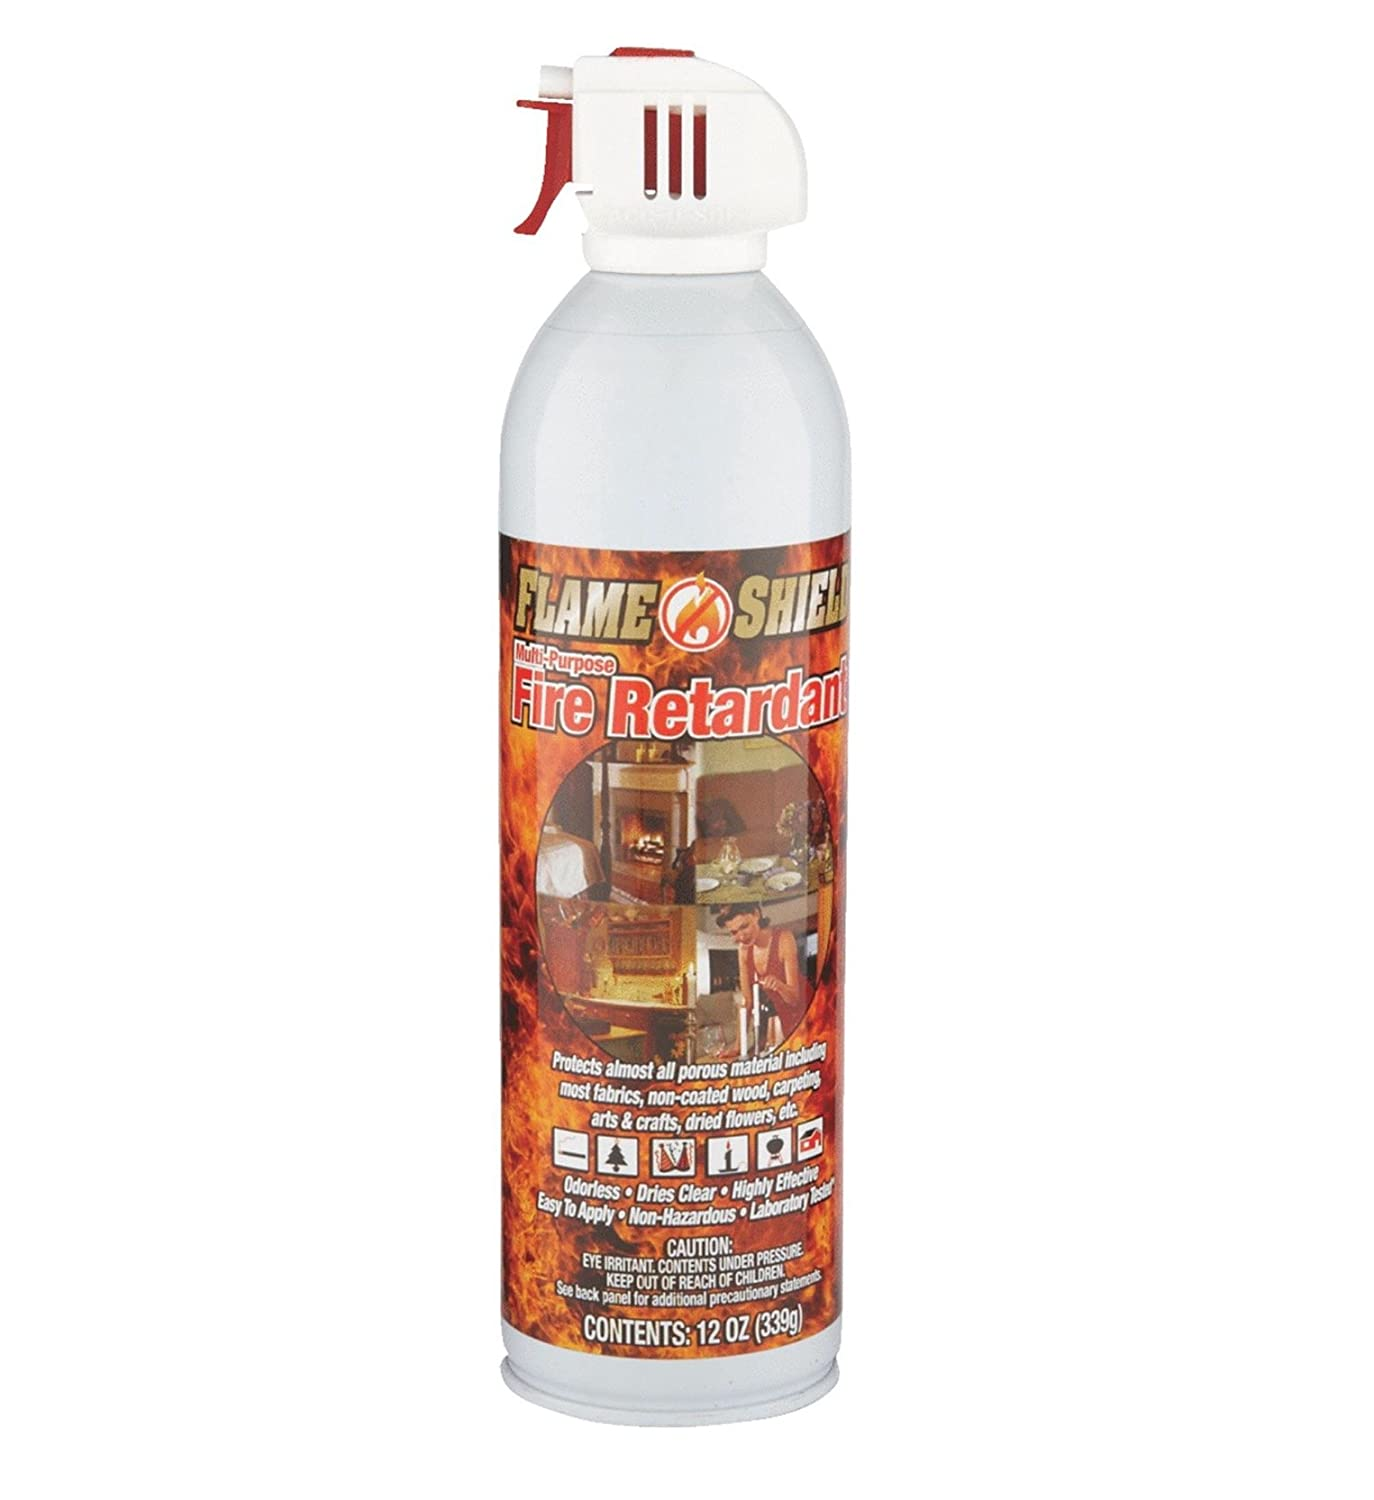 Fire Retardant Spray For Christmas Trees Part - 34: Amazon.com: Fire Retardant Tree Shield For Christmas Trees: Home U0026 Kitchen